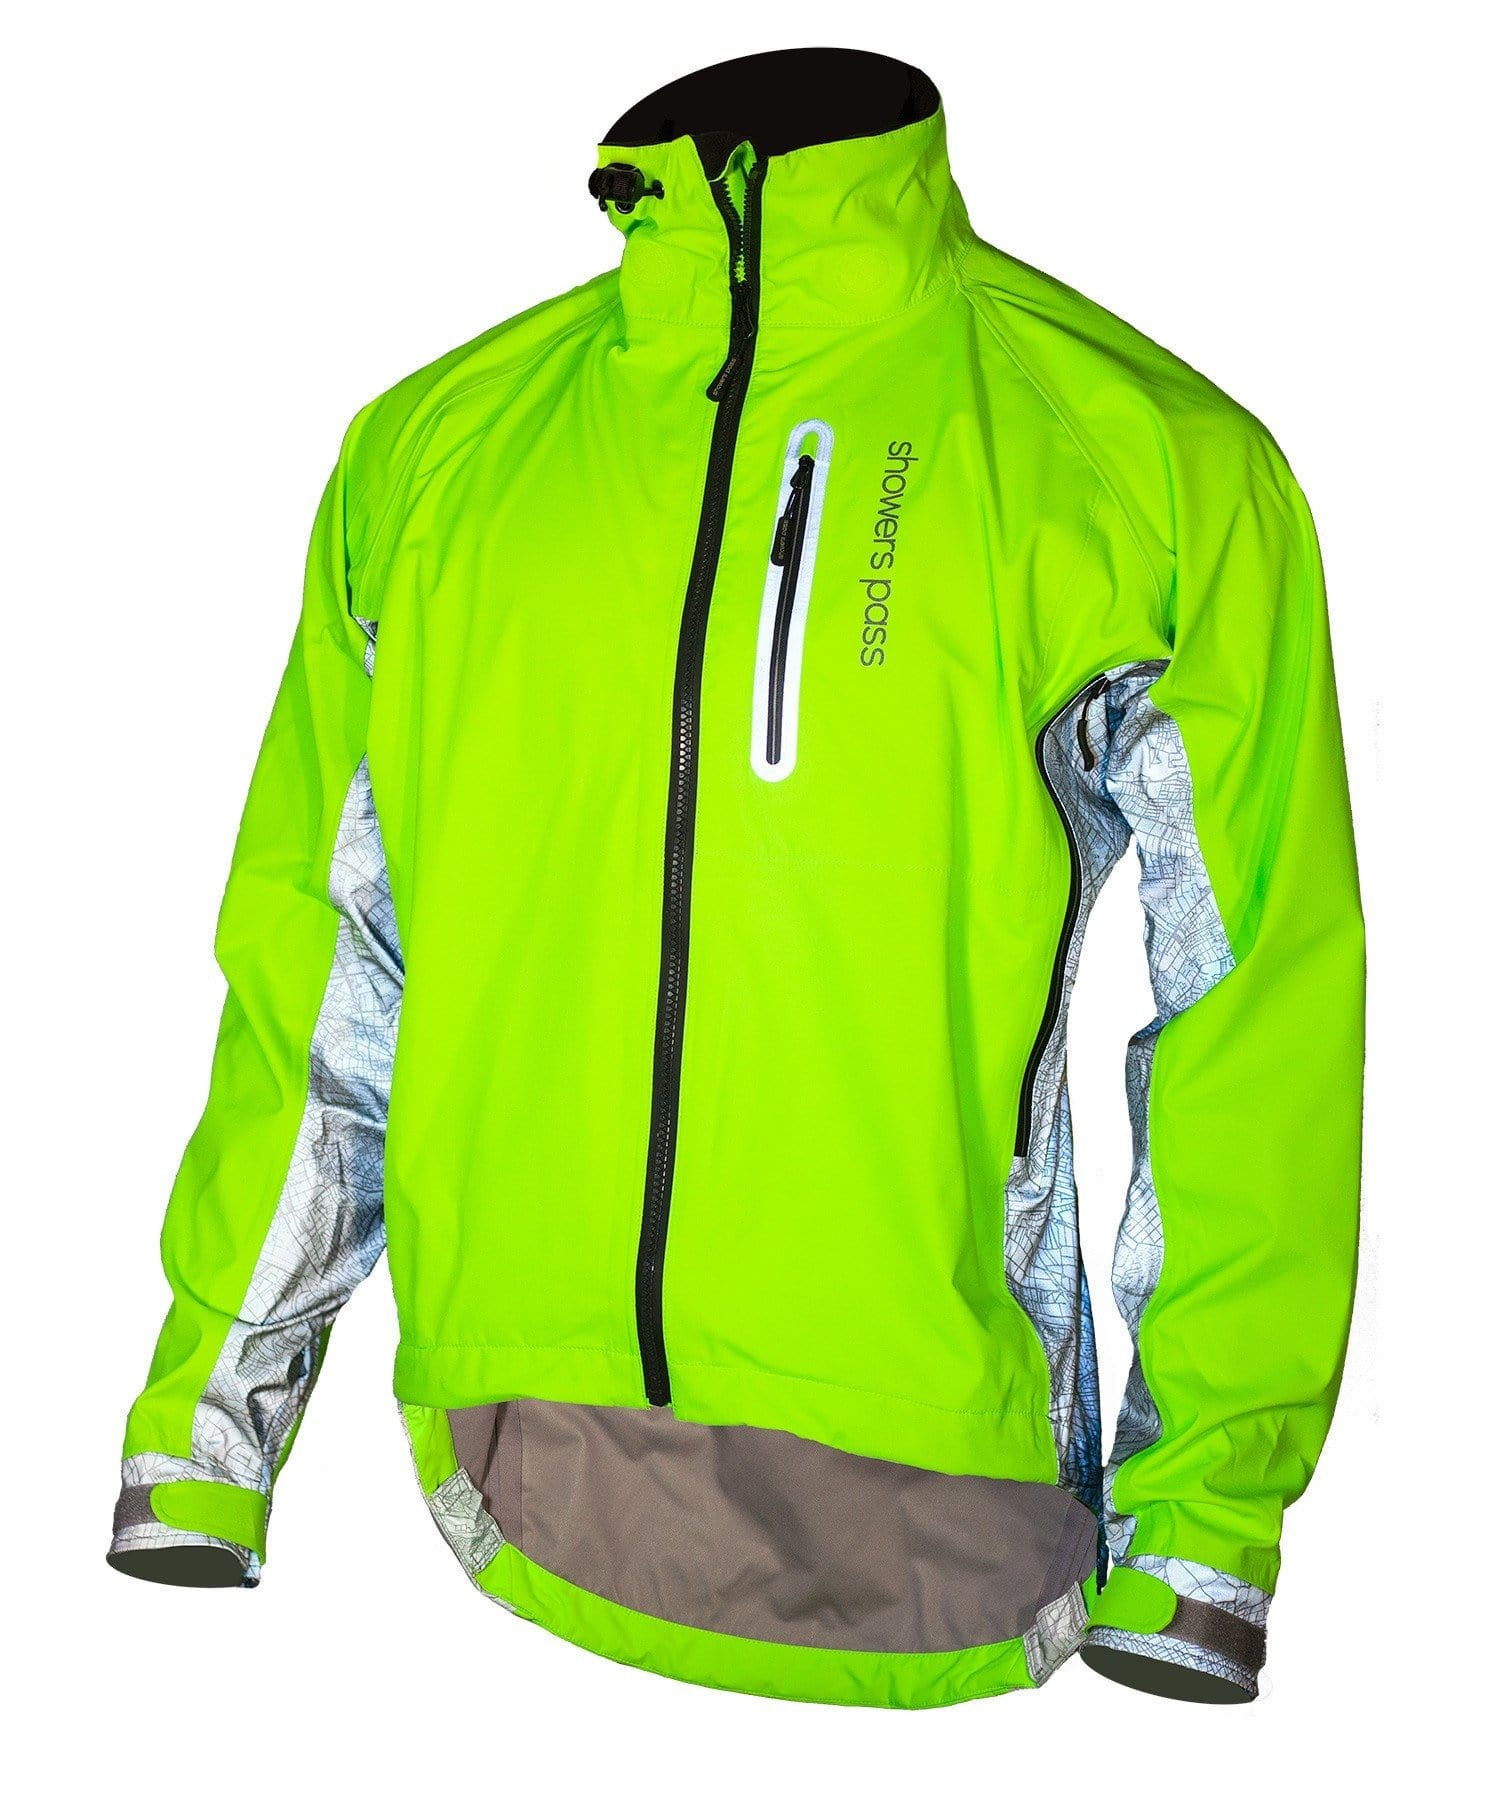 Men's Hi-Vis Elite E-Bike Jacket with Beacon Lights